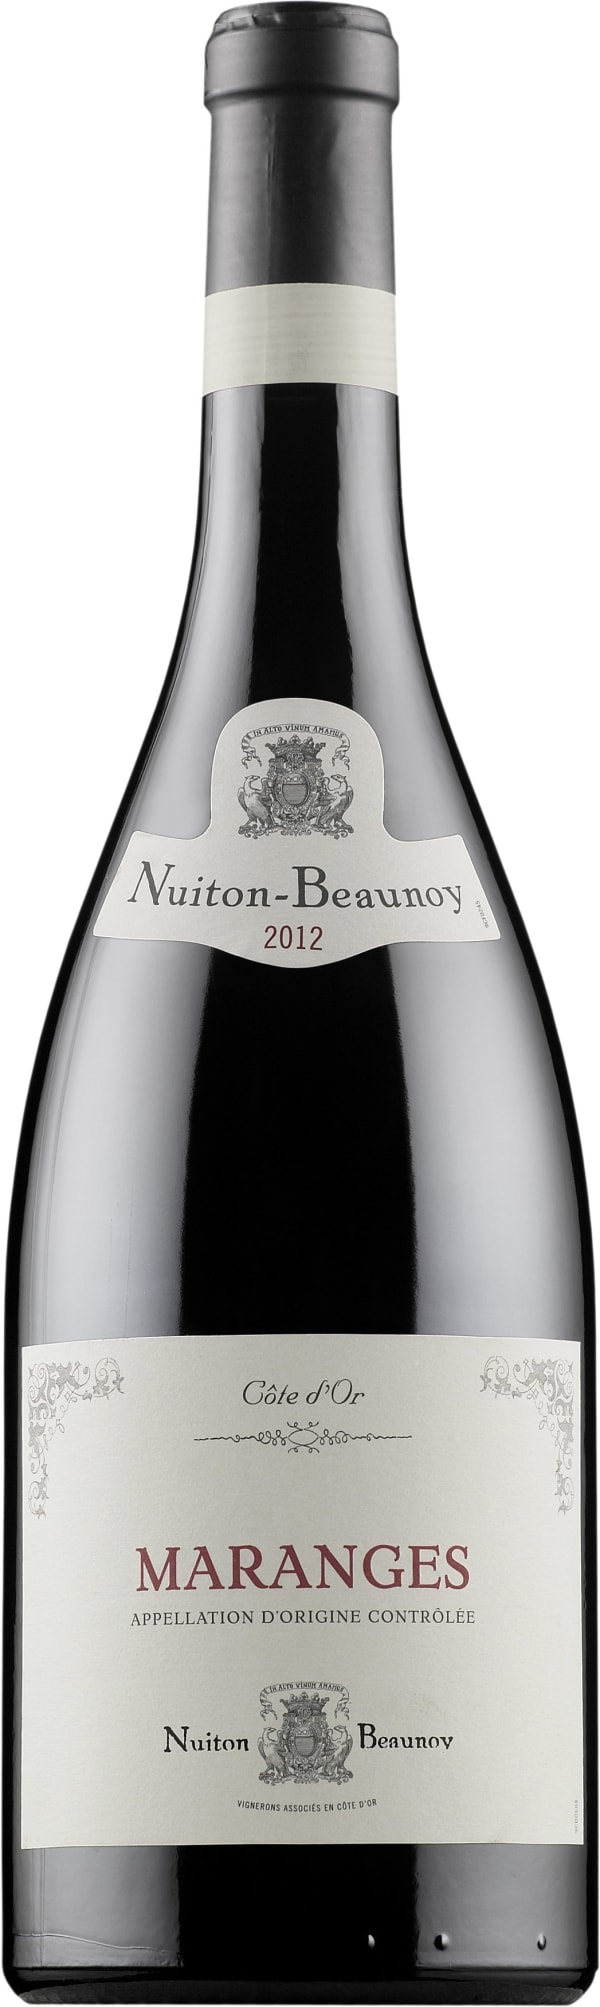 Nuiton-Beaunoy Maranges 2013